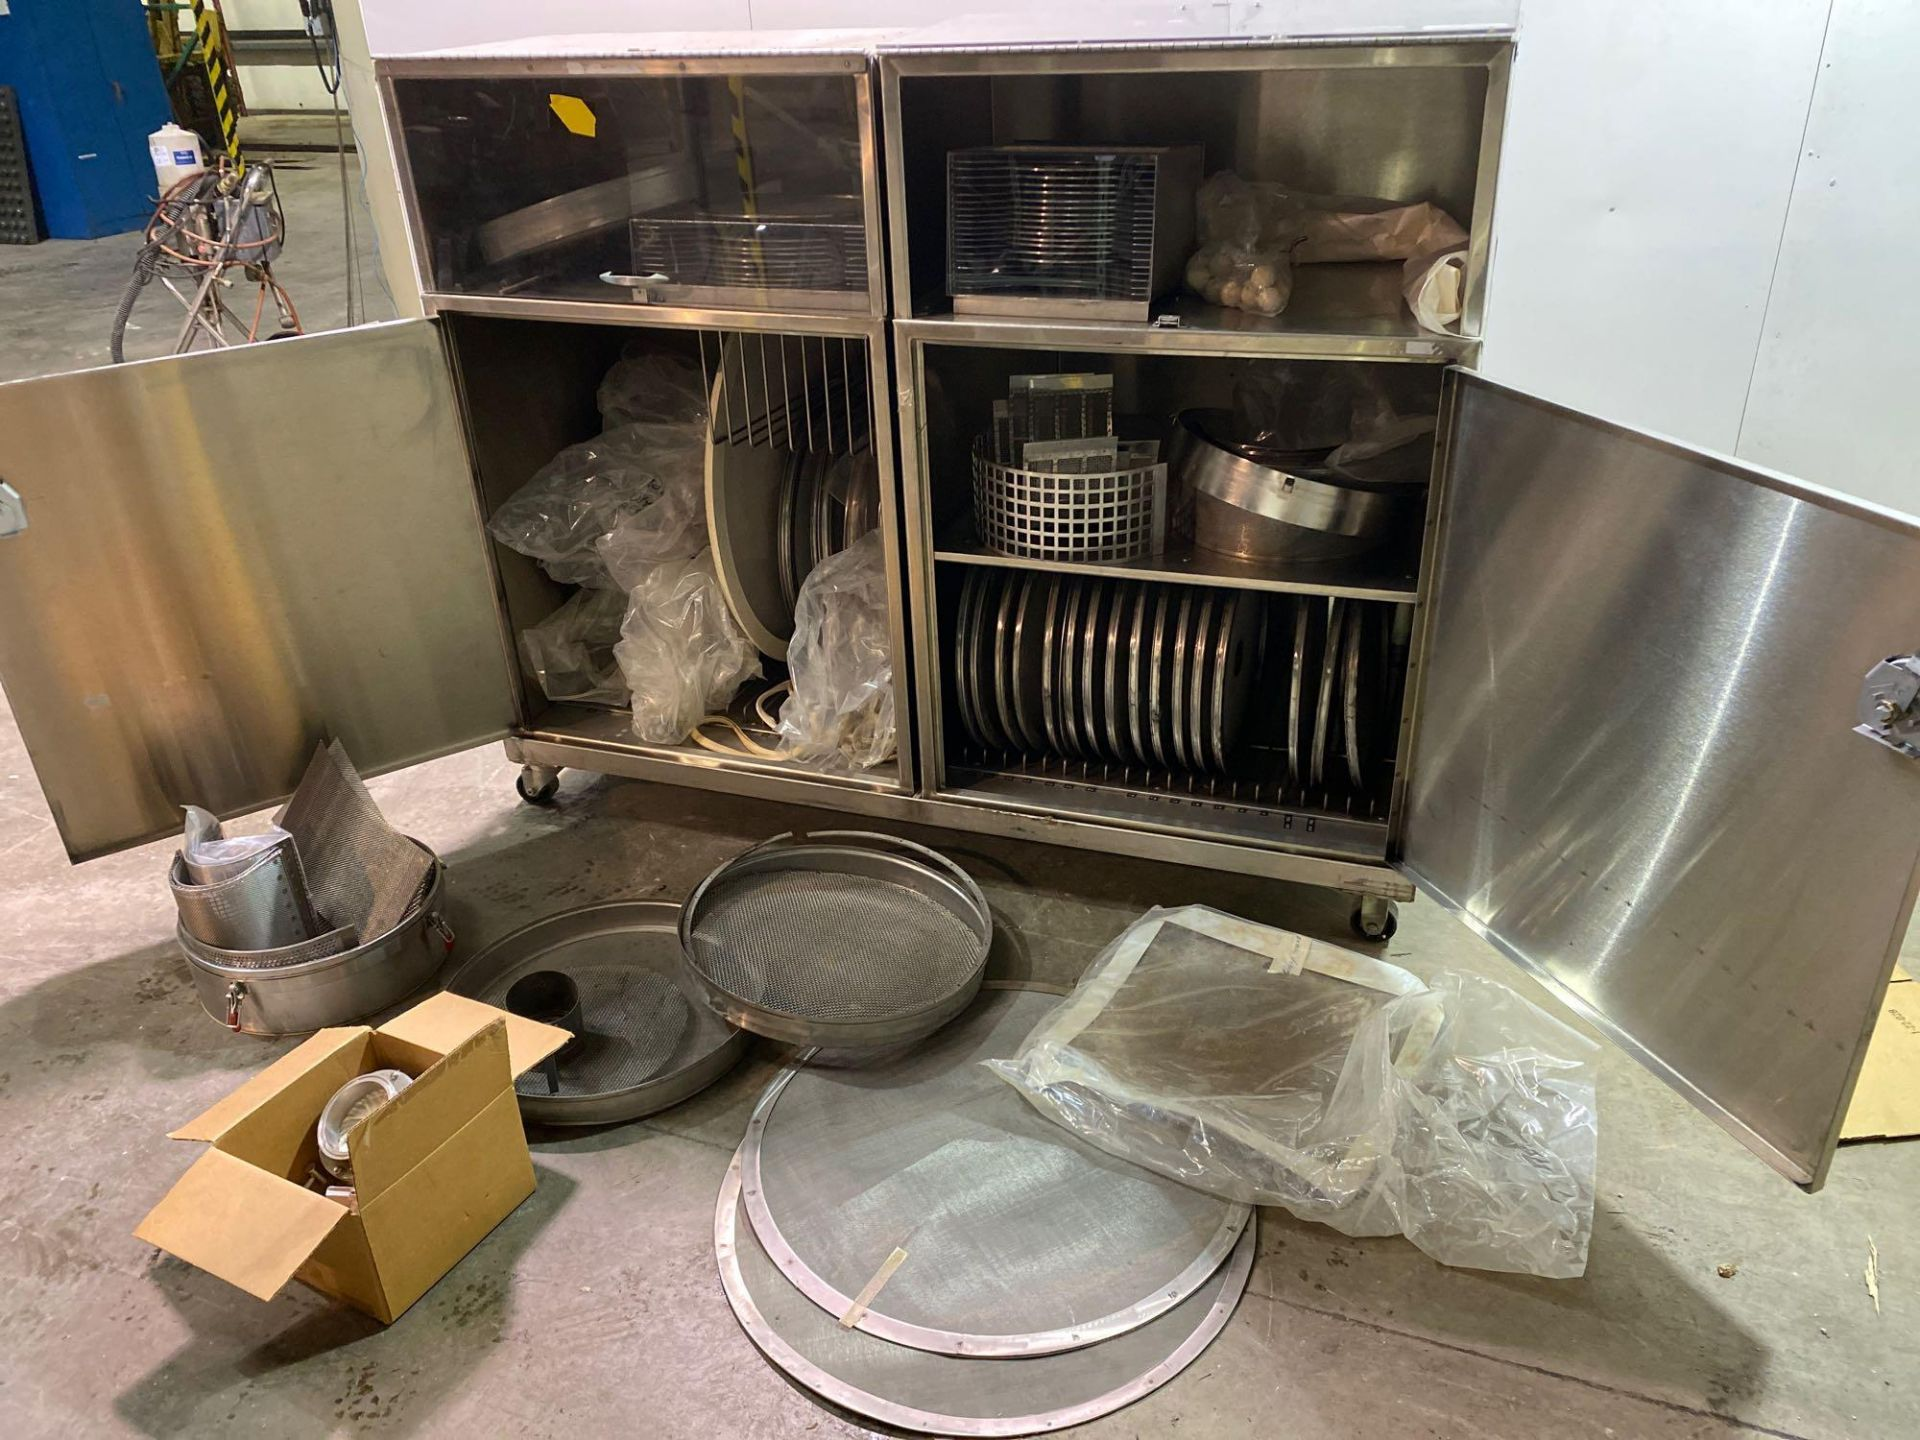 Mobile Stainless Steel Cabinet with Sifter Sieves - Assorted Sizes - Image 4 of 13